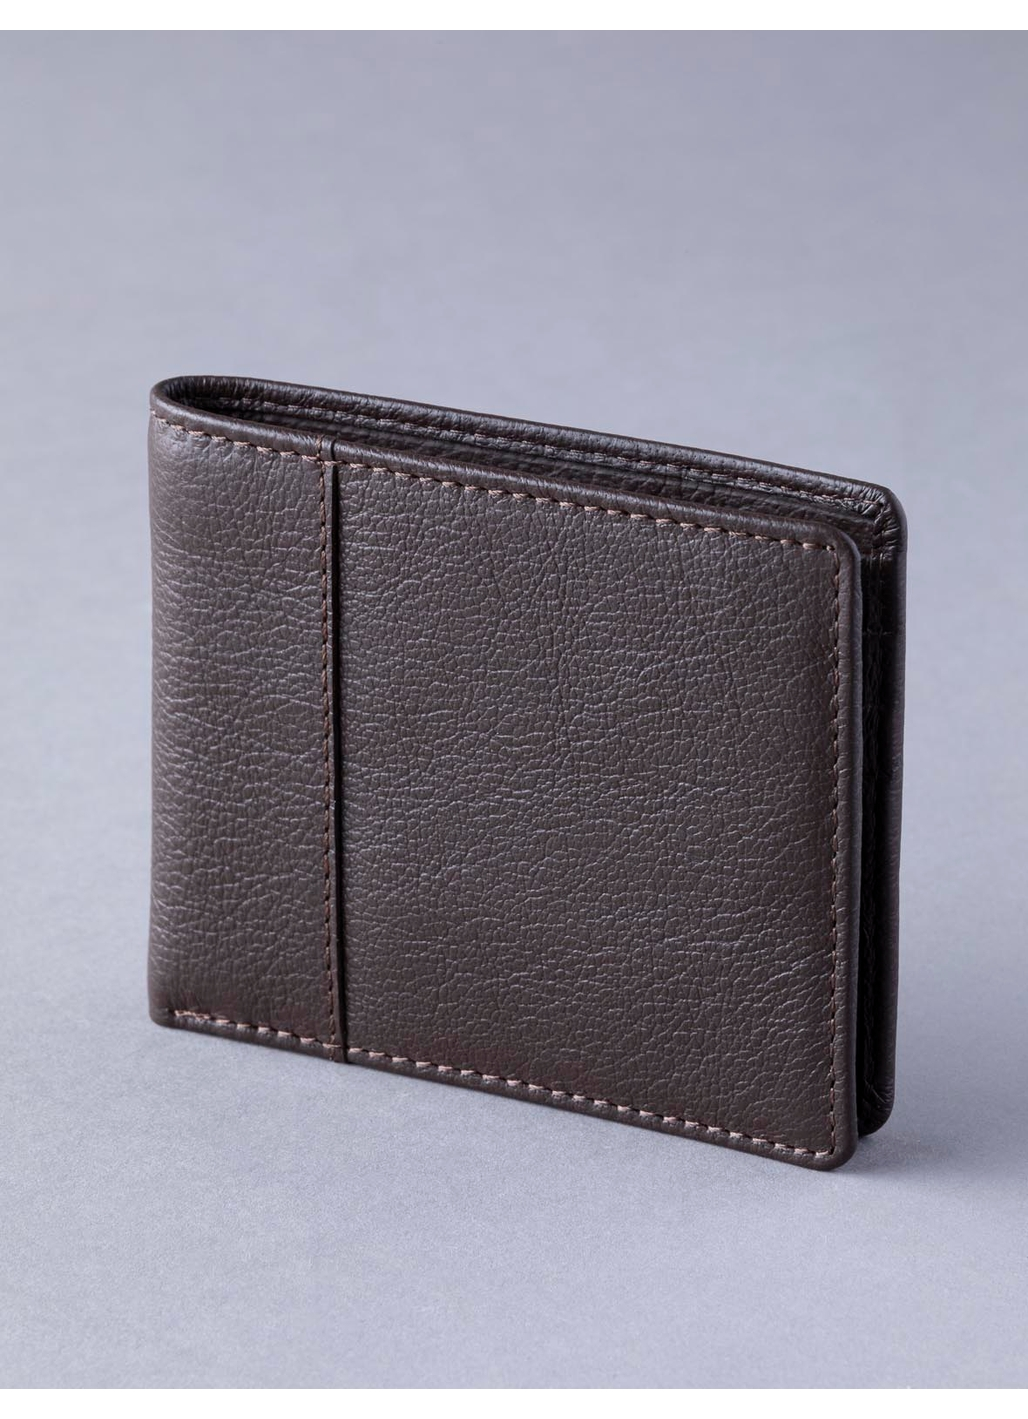 Scarsdale Leather Wallet in Brown